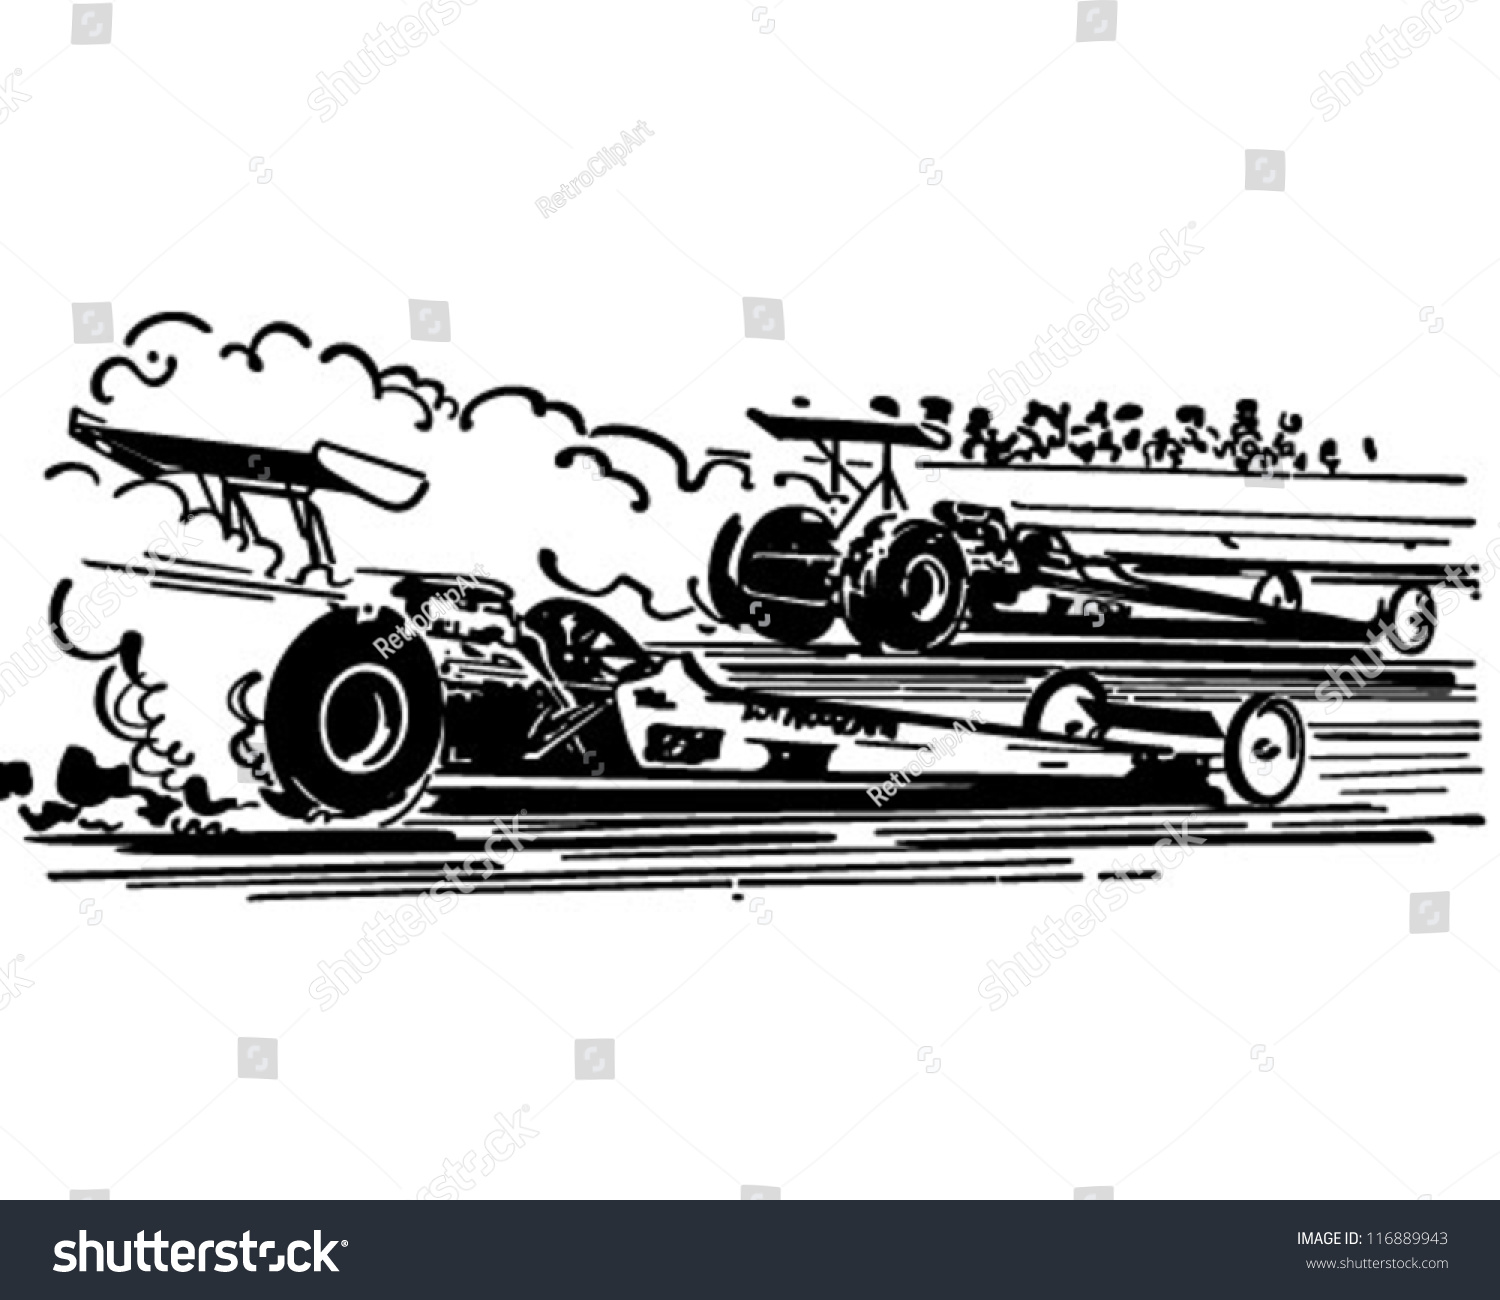 Drag racing clipart 5 » Clipart Station.